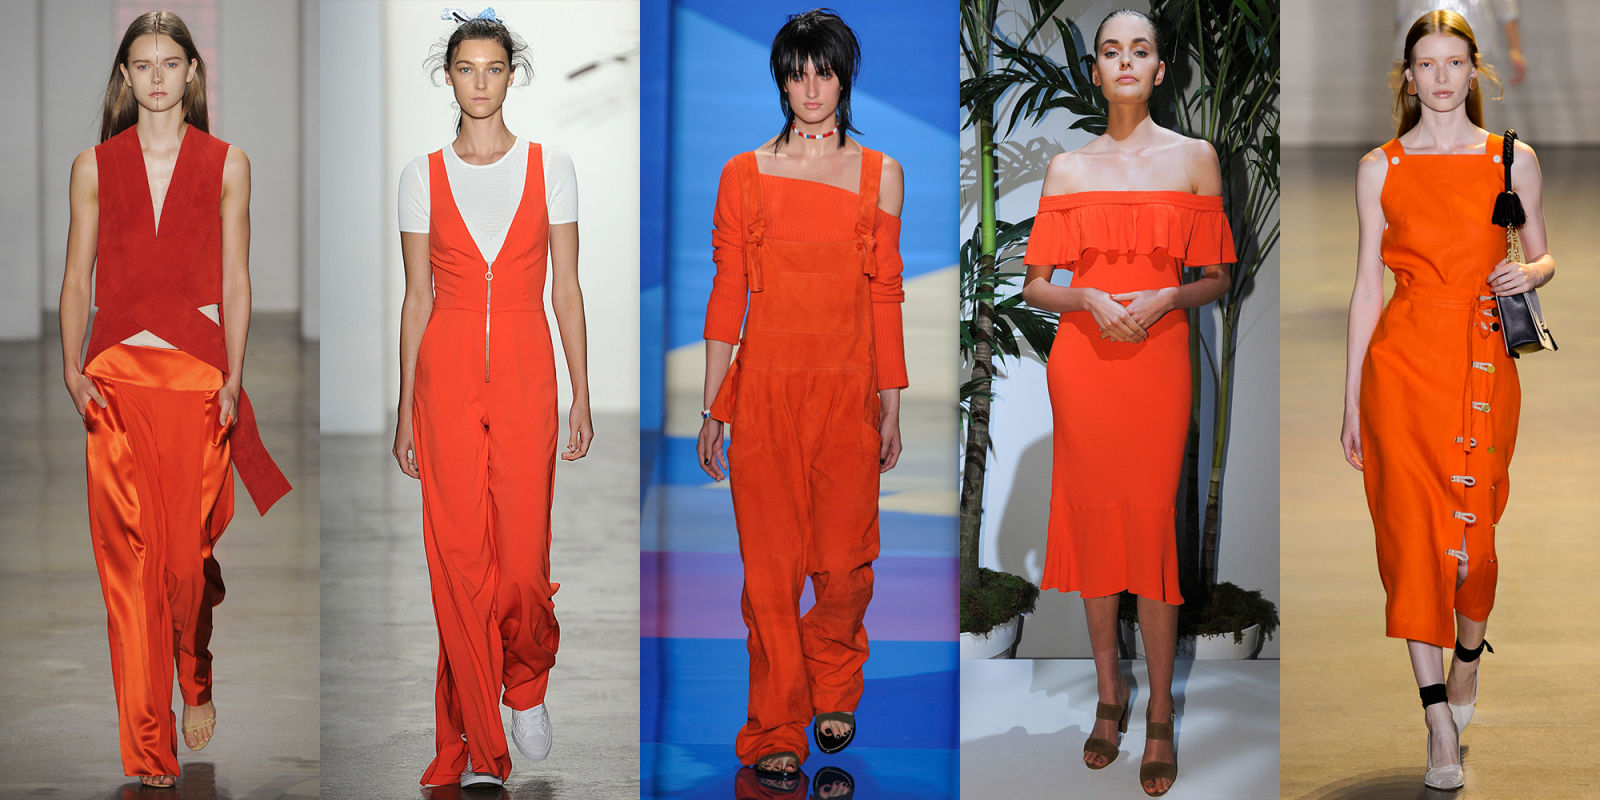 Fashion Trends for Spring 2016|From left to right: Dion Lee, Adam Selman, Paul Smith or Altuzzara